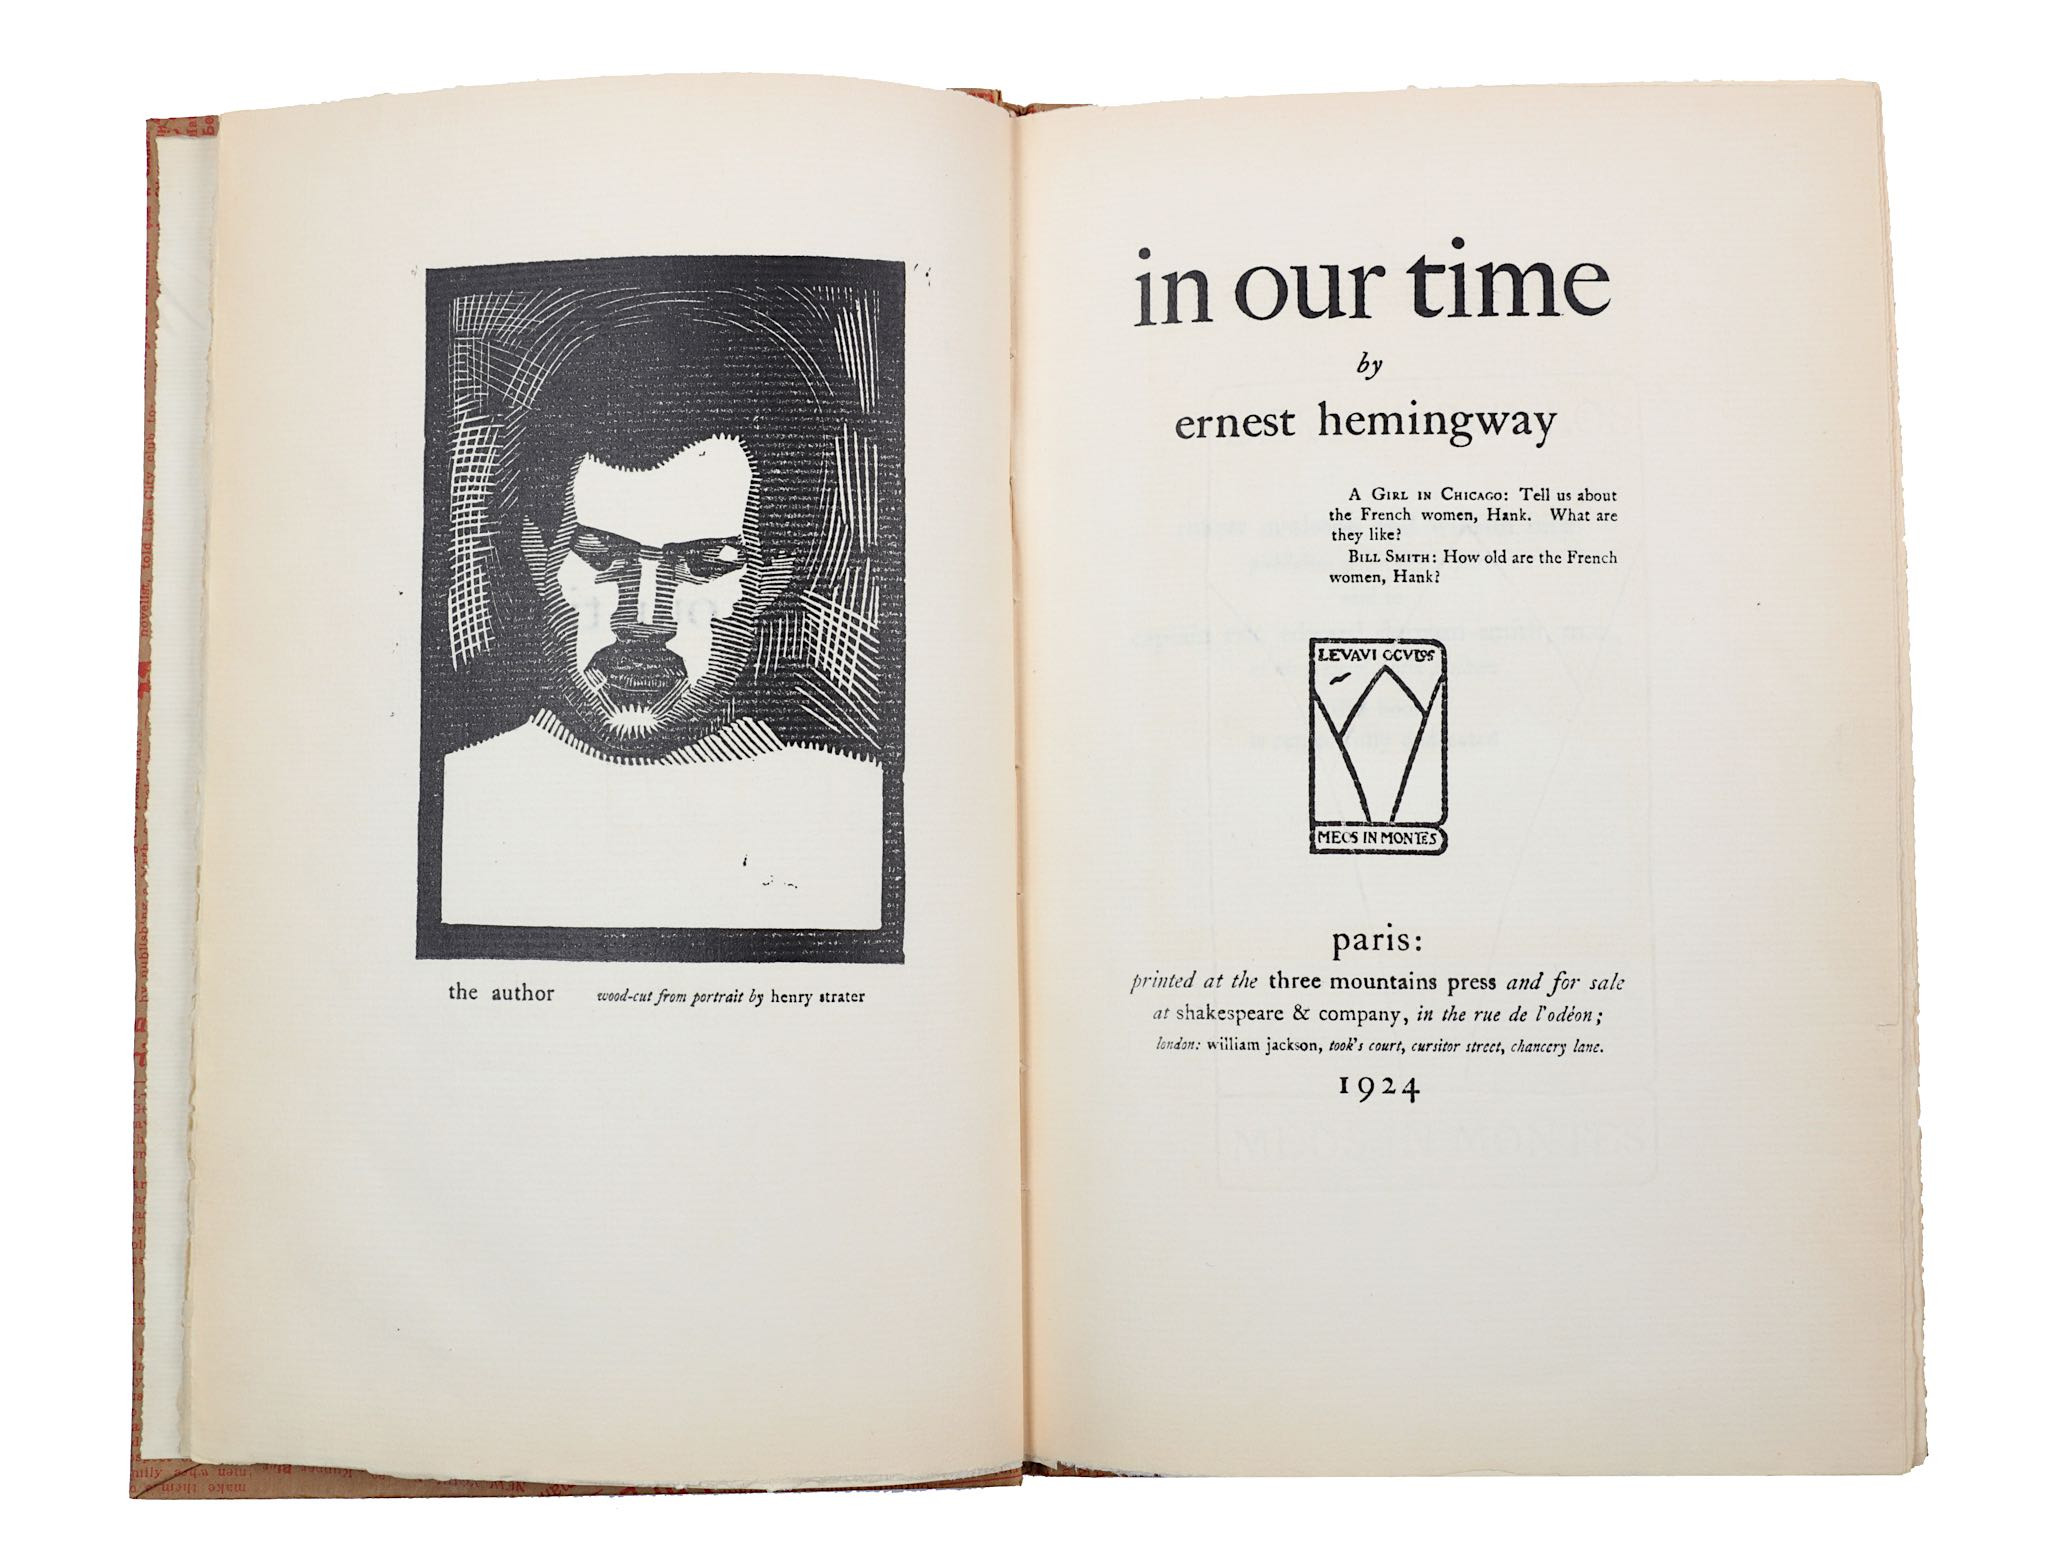 Lot 46 - Hemingway (Ernest) In Our Time, FIRST EDITION, NUMBER 137 OF 170 COPIES on Rives handmade paper,